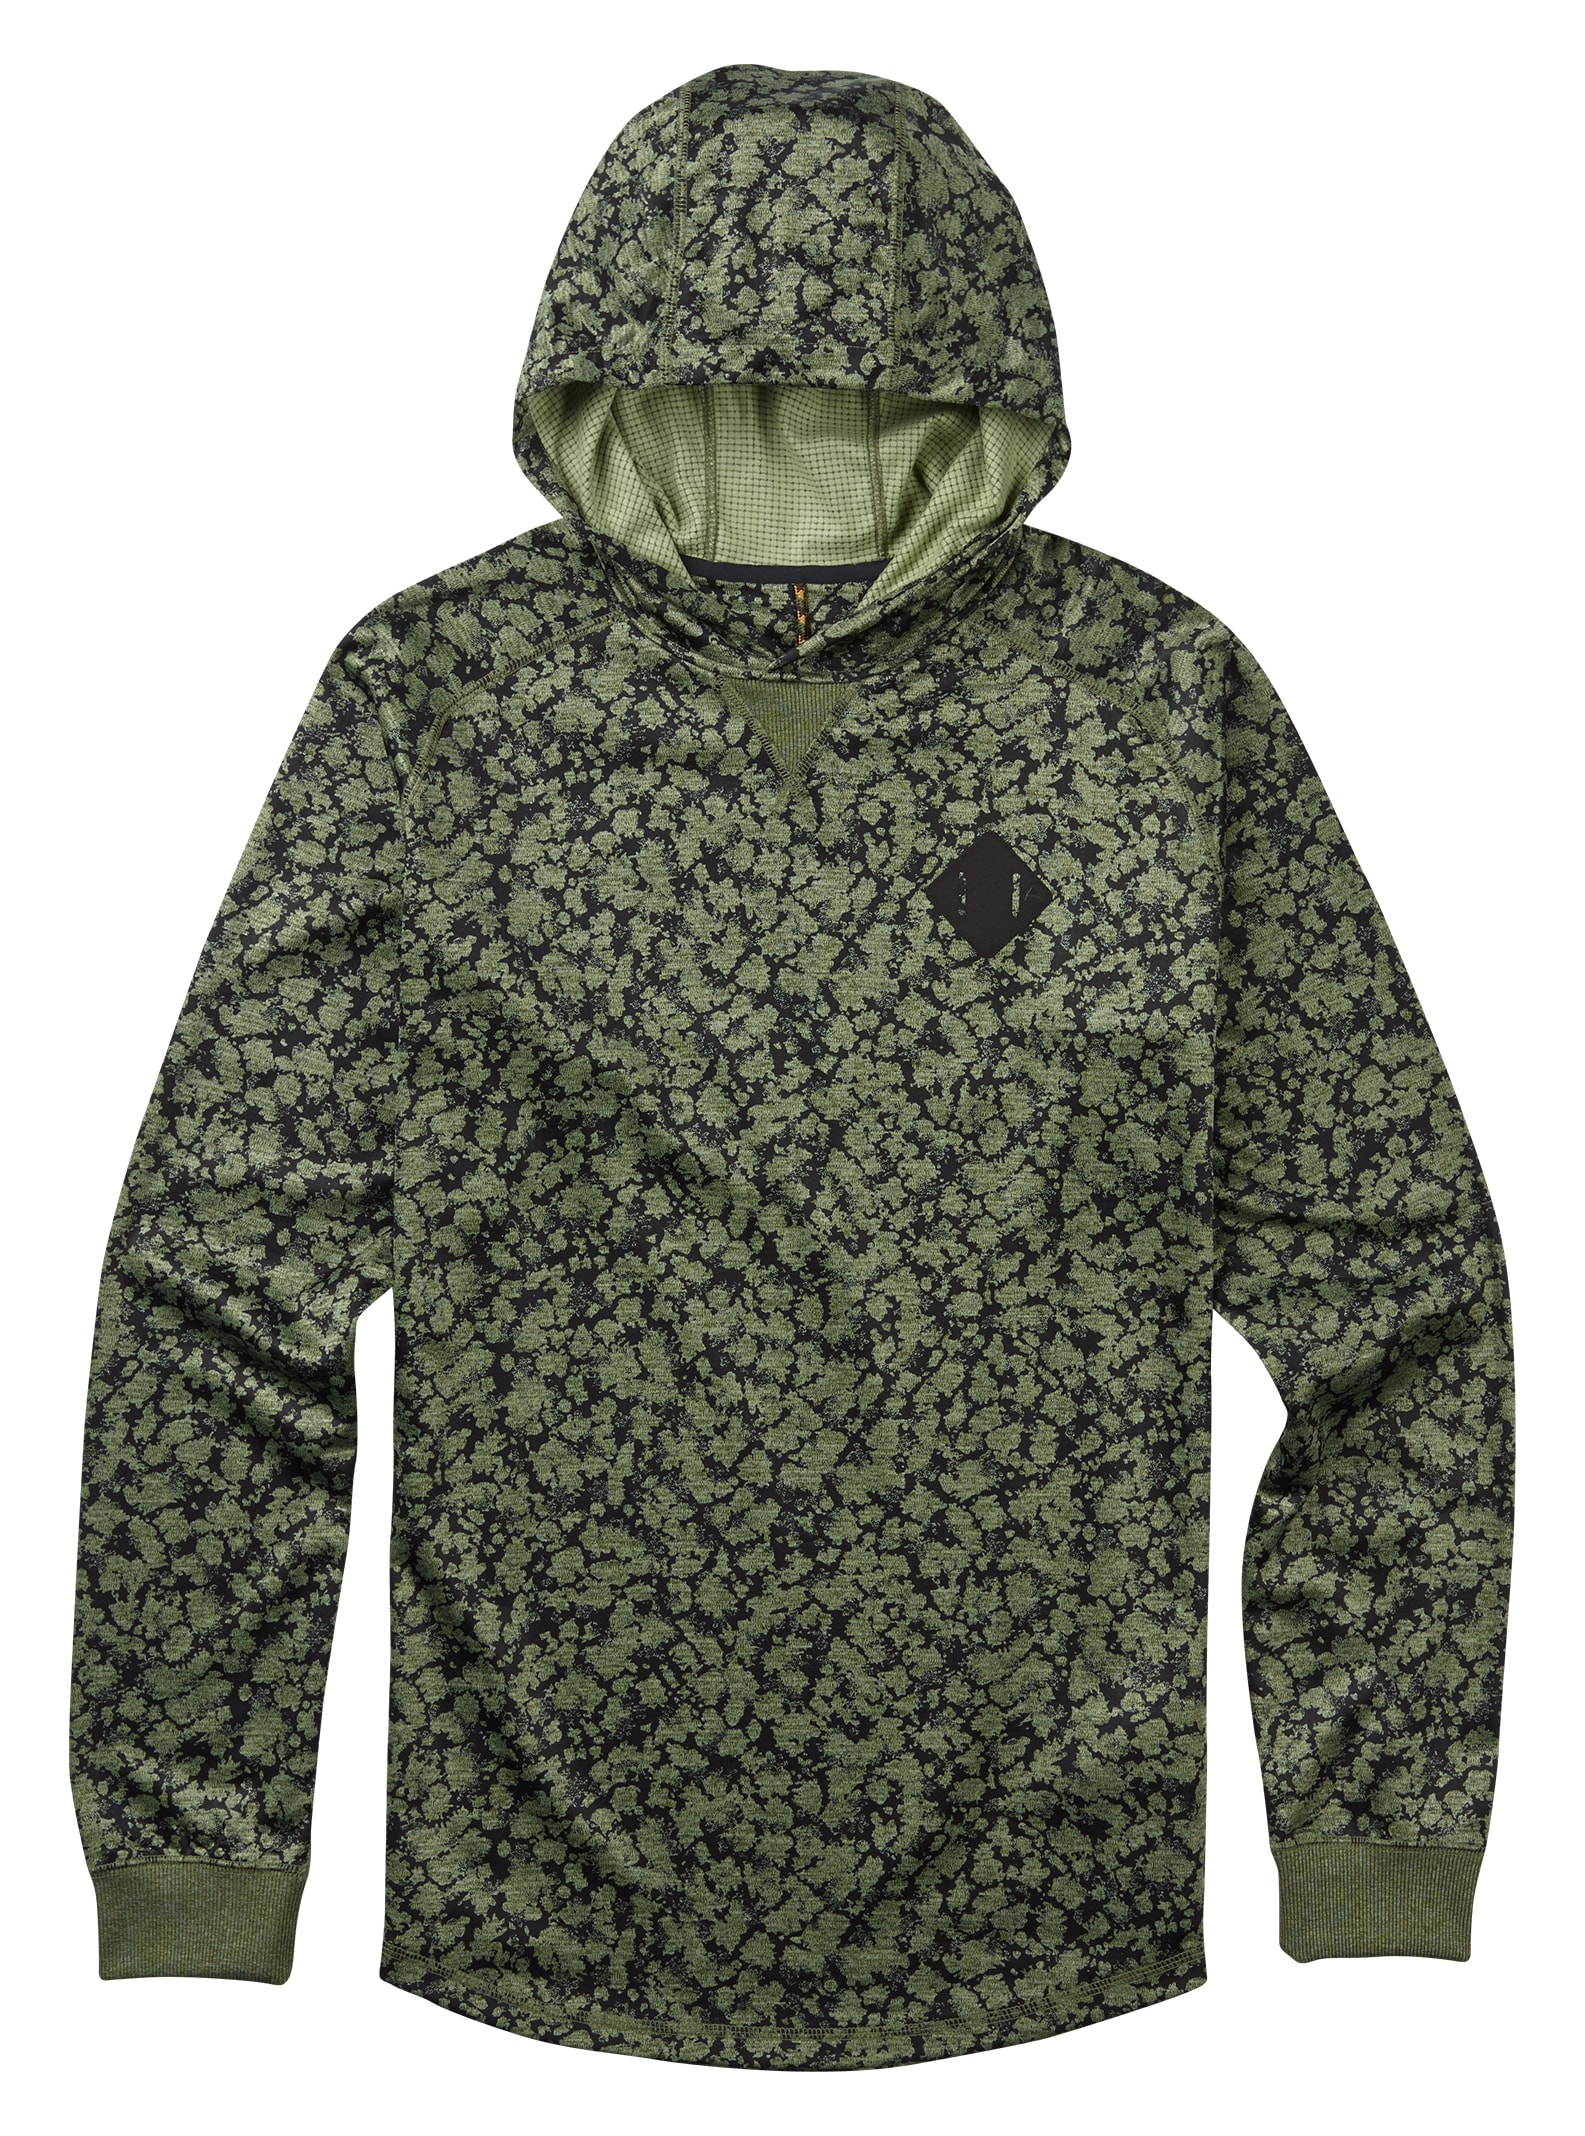 Burton Caption Pullover Hoodie shown in Rifle Green Mossglenn